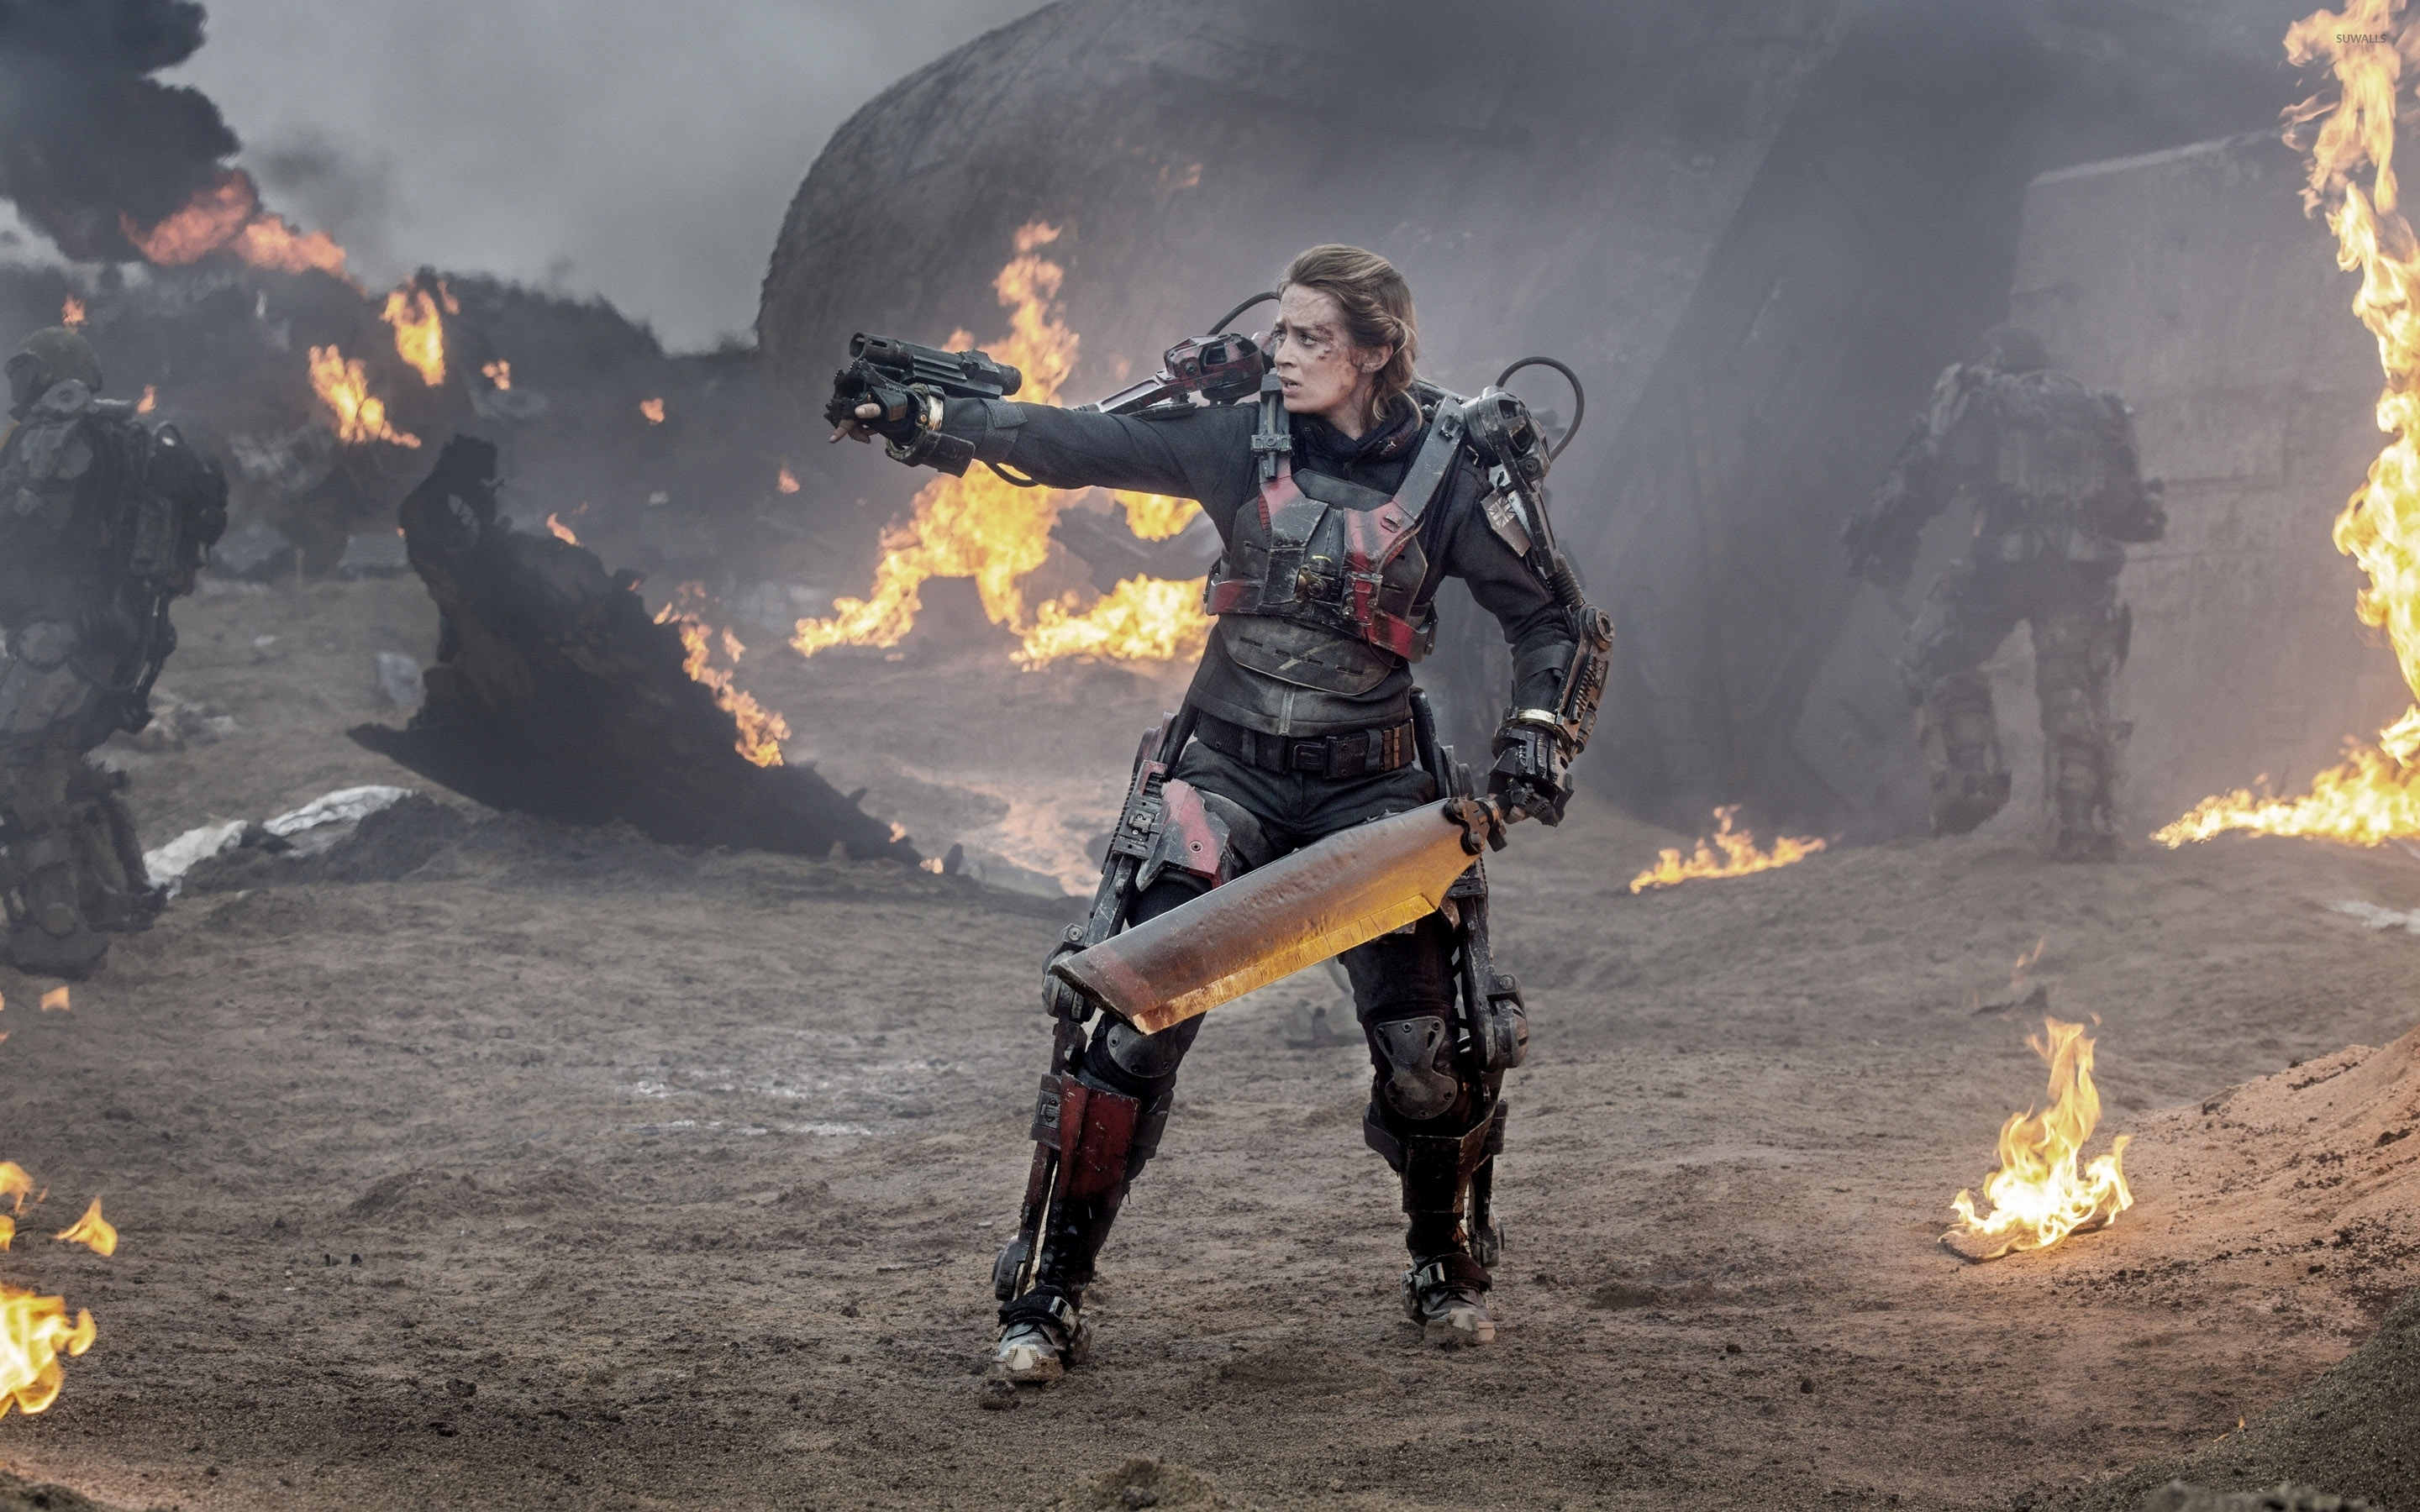 Rita Edge Of Tomorrow 2 Wallpaper Movie Wallpapers 36719